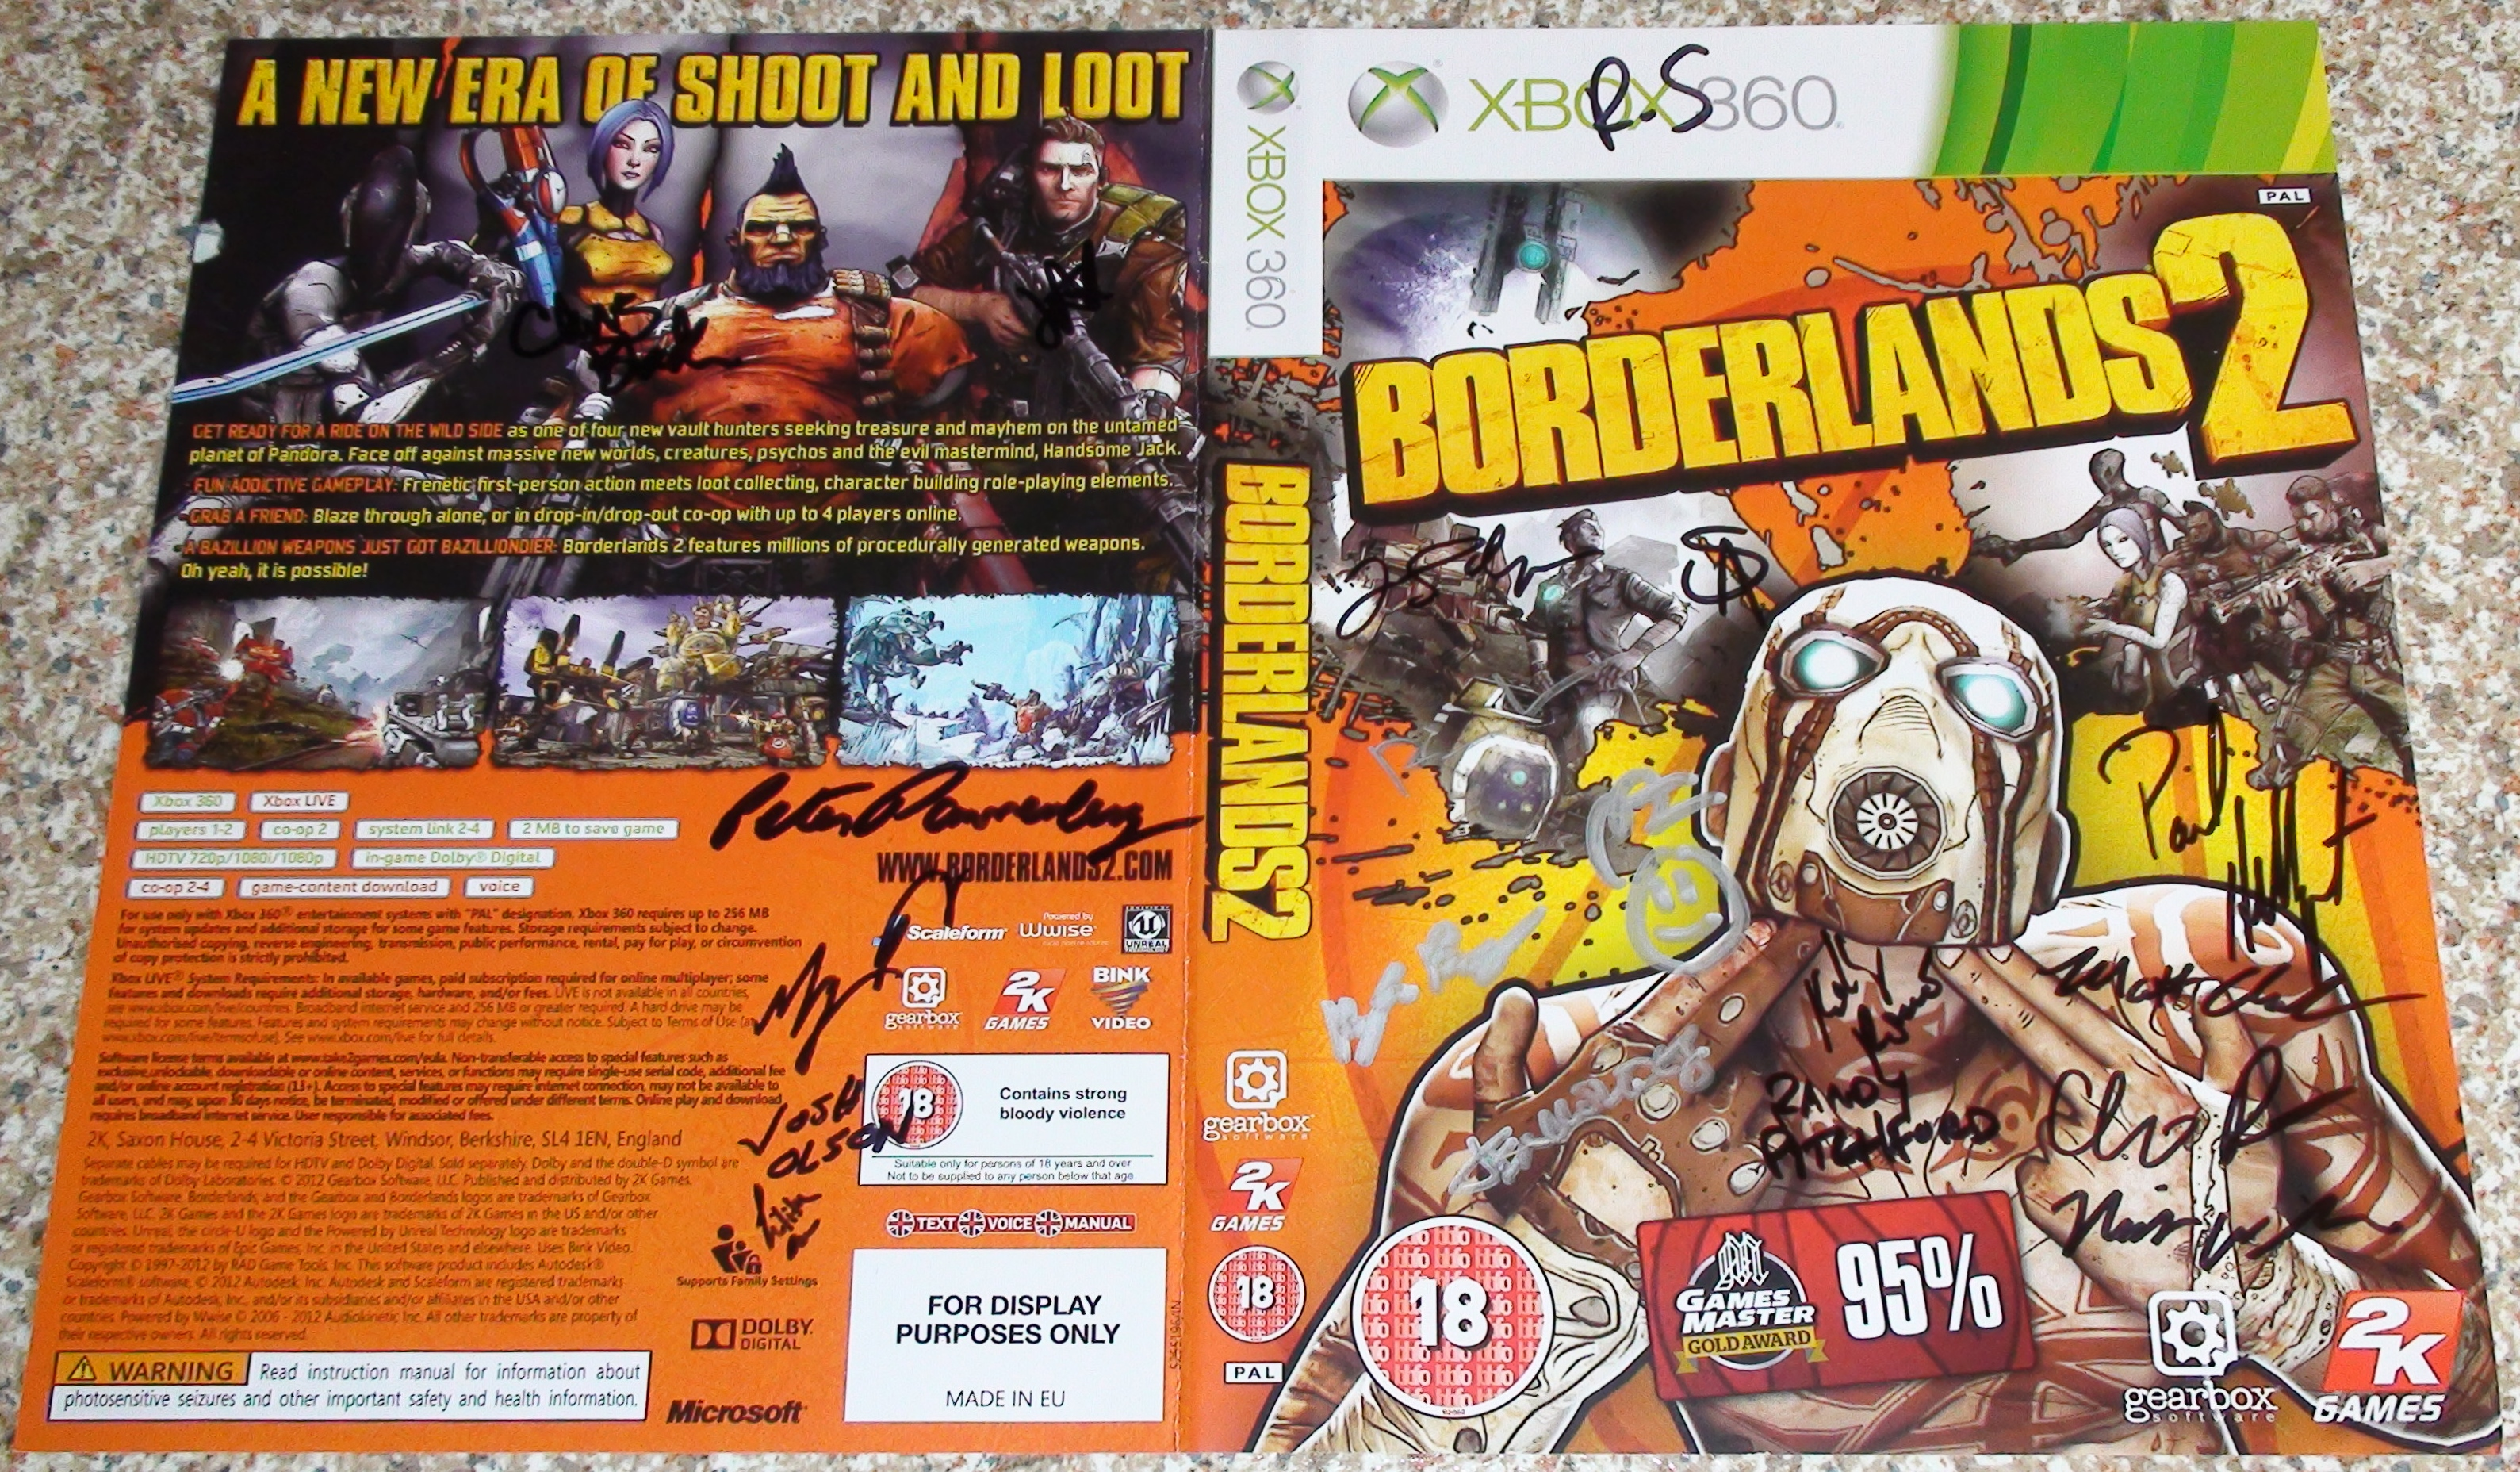 Borderlands 2 - Gearbox Software